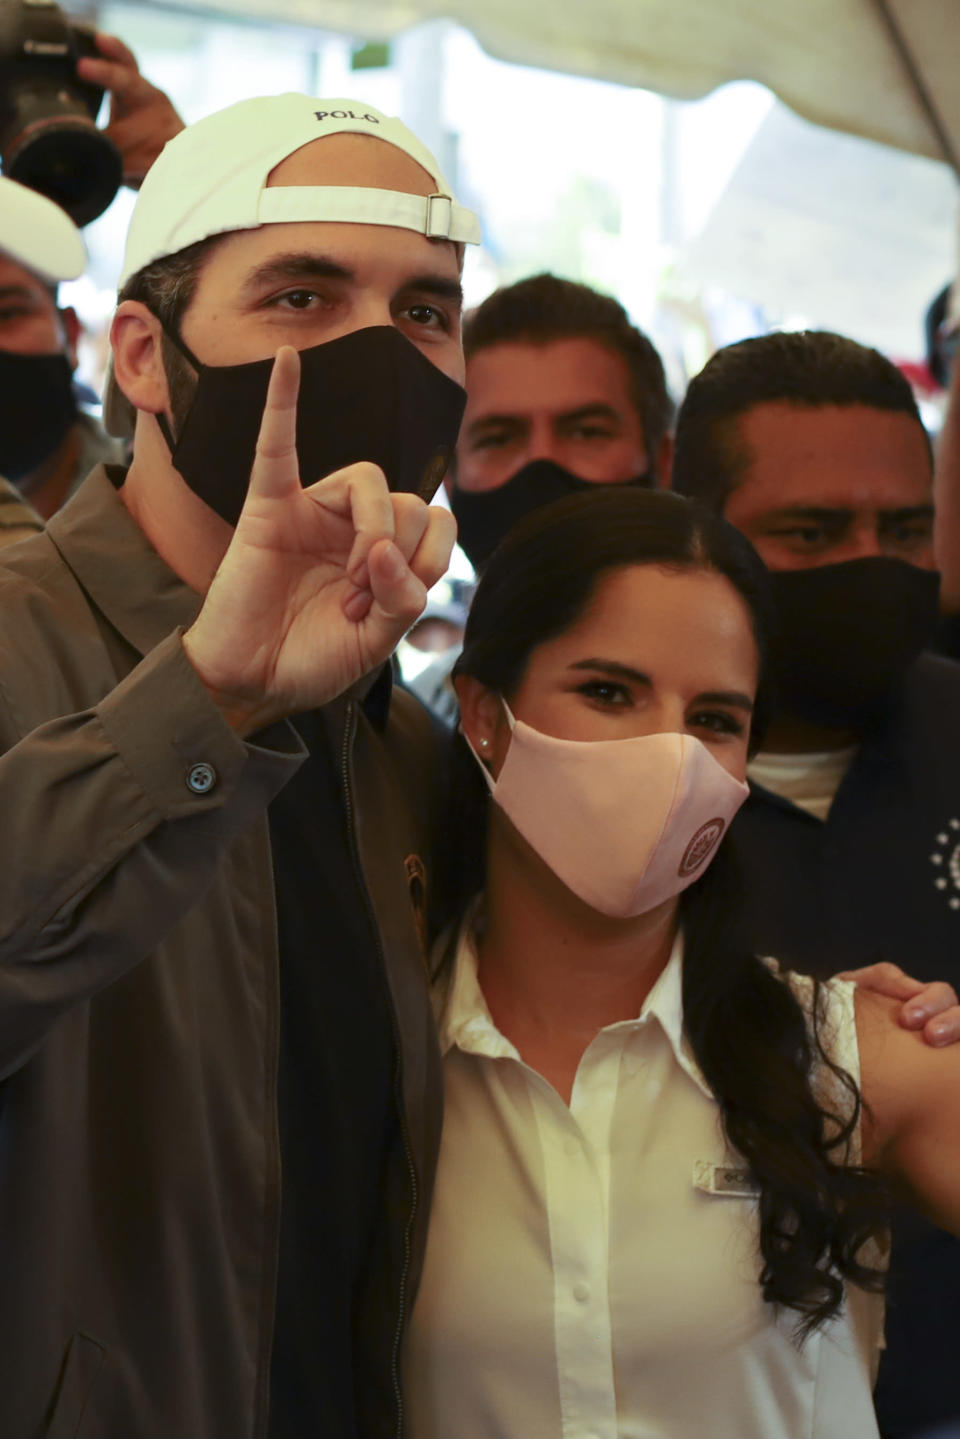 President Nayib Bukele holds up his marked finger after voting, as he poses with his wife Gabriela Rodriguez de Bukele at a polling station during local and legislative elections, in San Salvador, El Salvador, Sunday, Feb. 28, 2021. (AP Photo/Salvador Melendez)